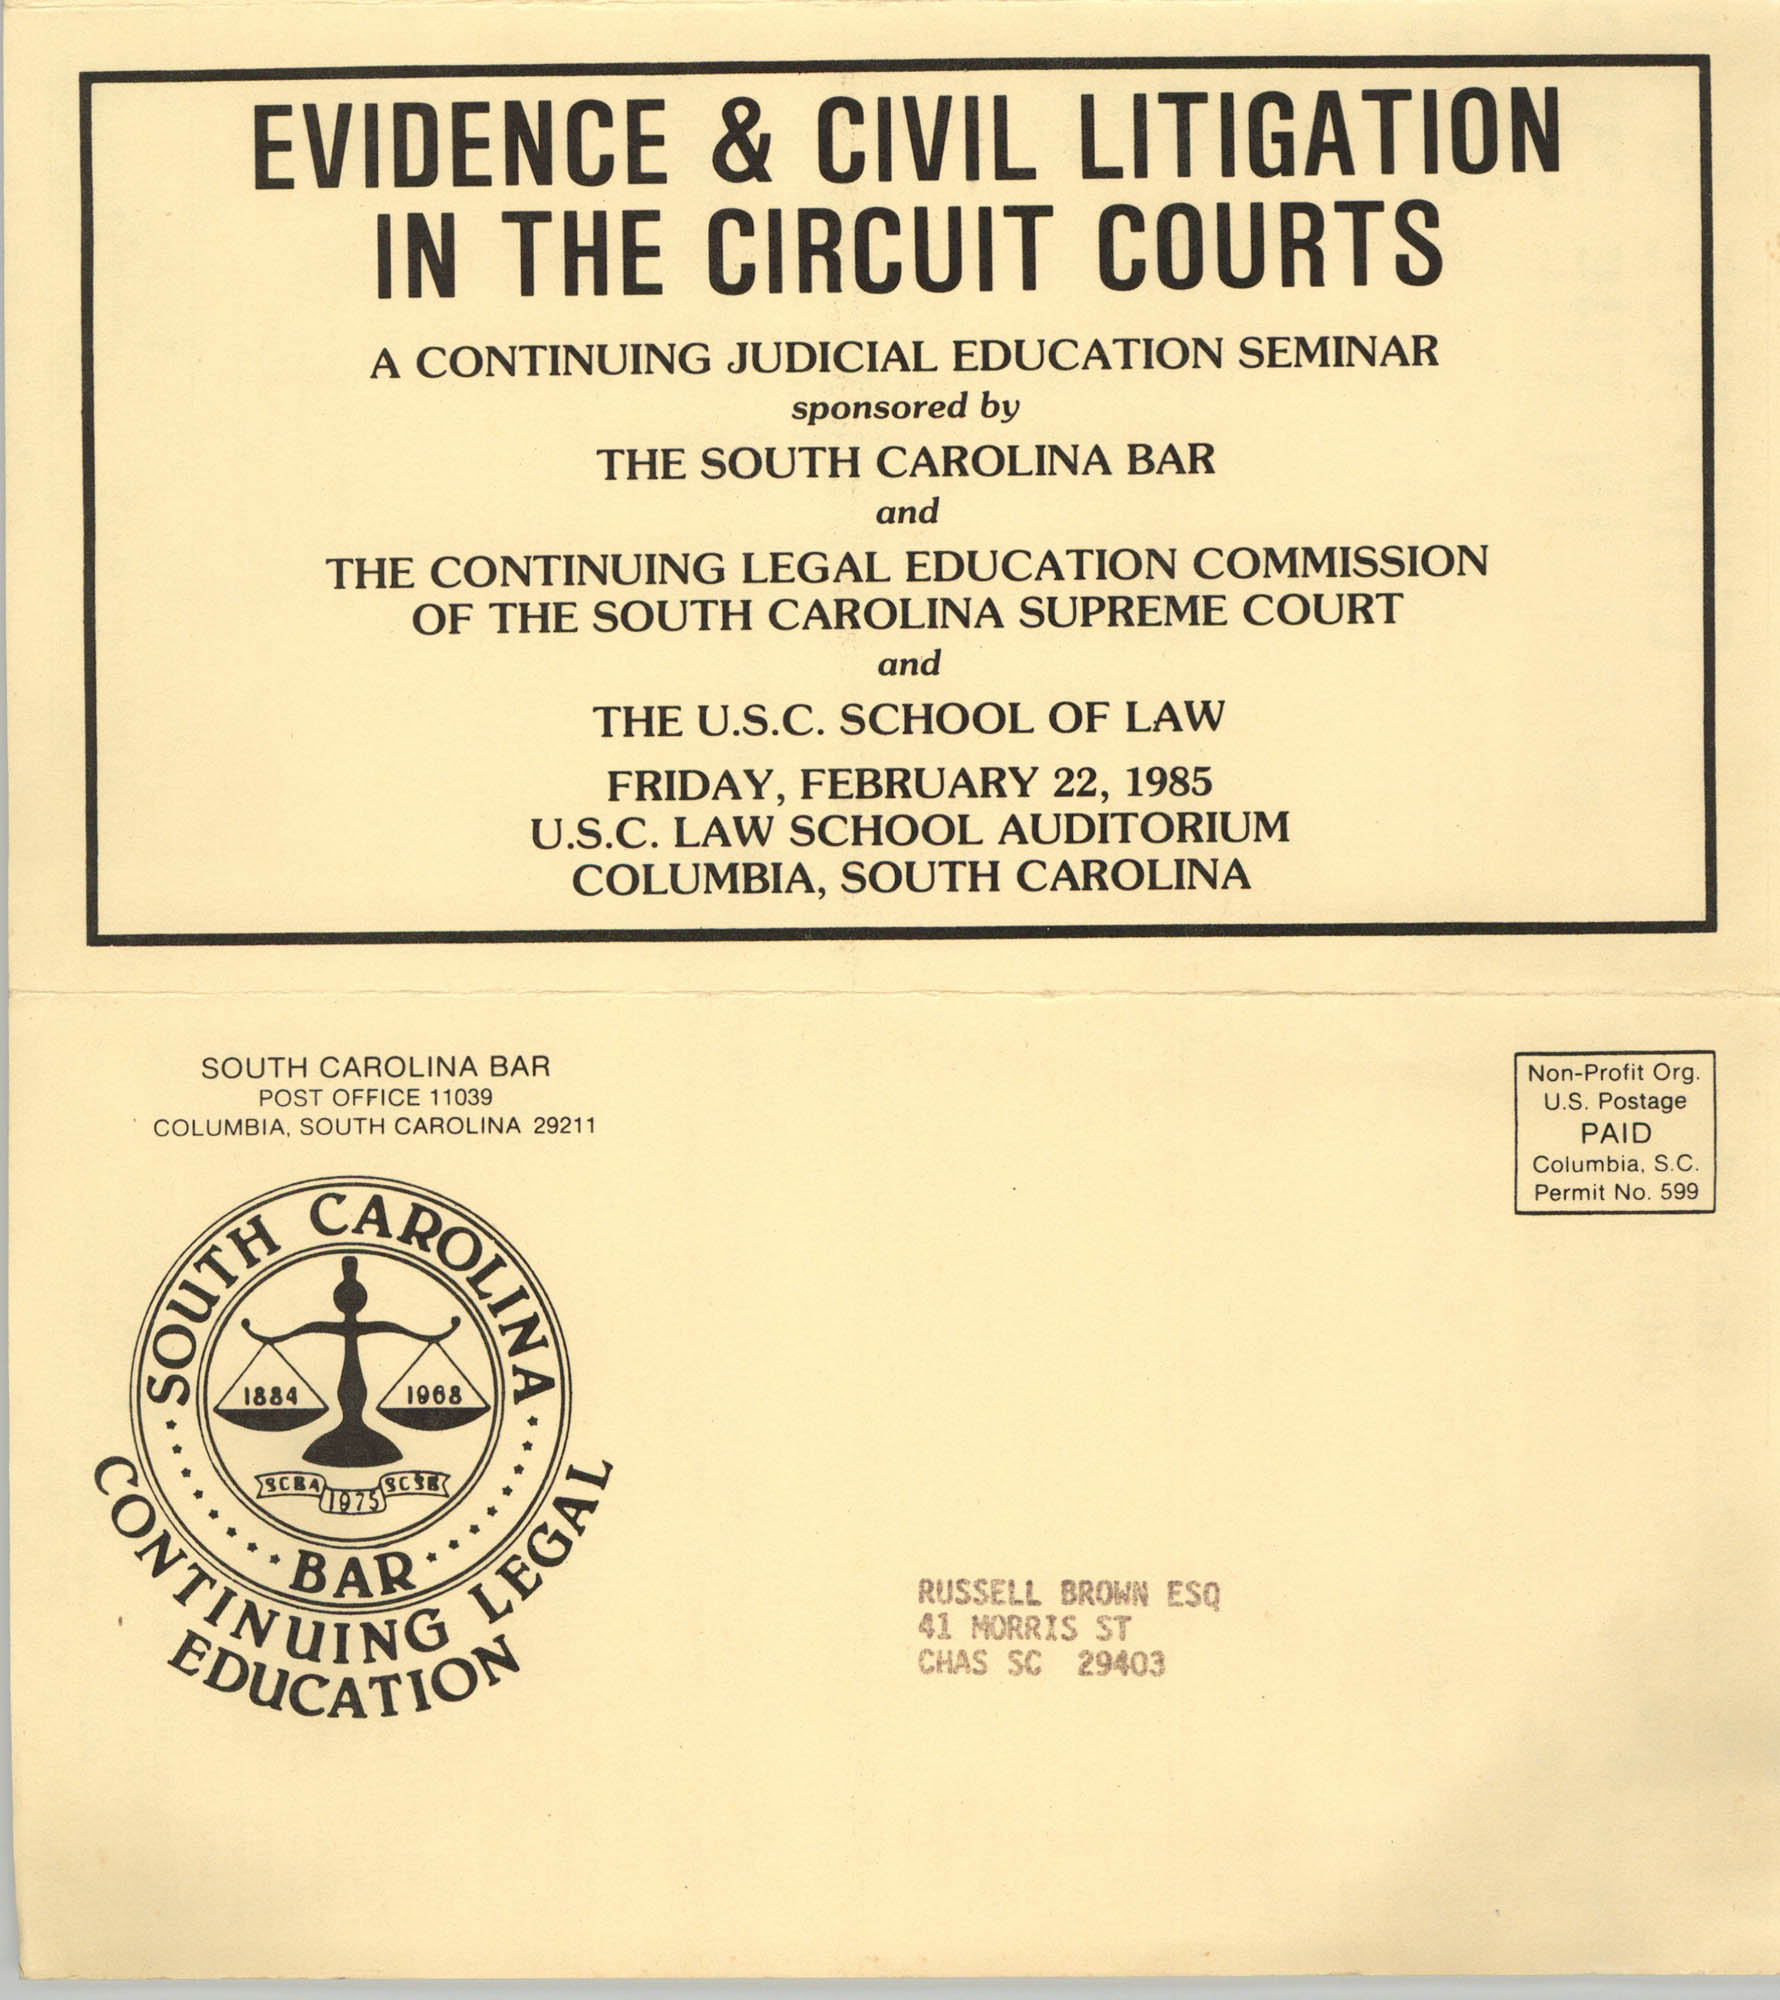 Evidence & Civil Litigation in the Circuit Courts, Continuing Judicial Education Seminar Pamphlet, February 22, 1985, Russell Brown